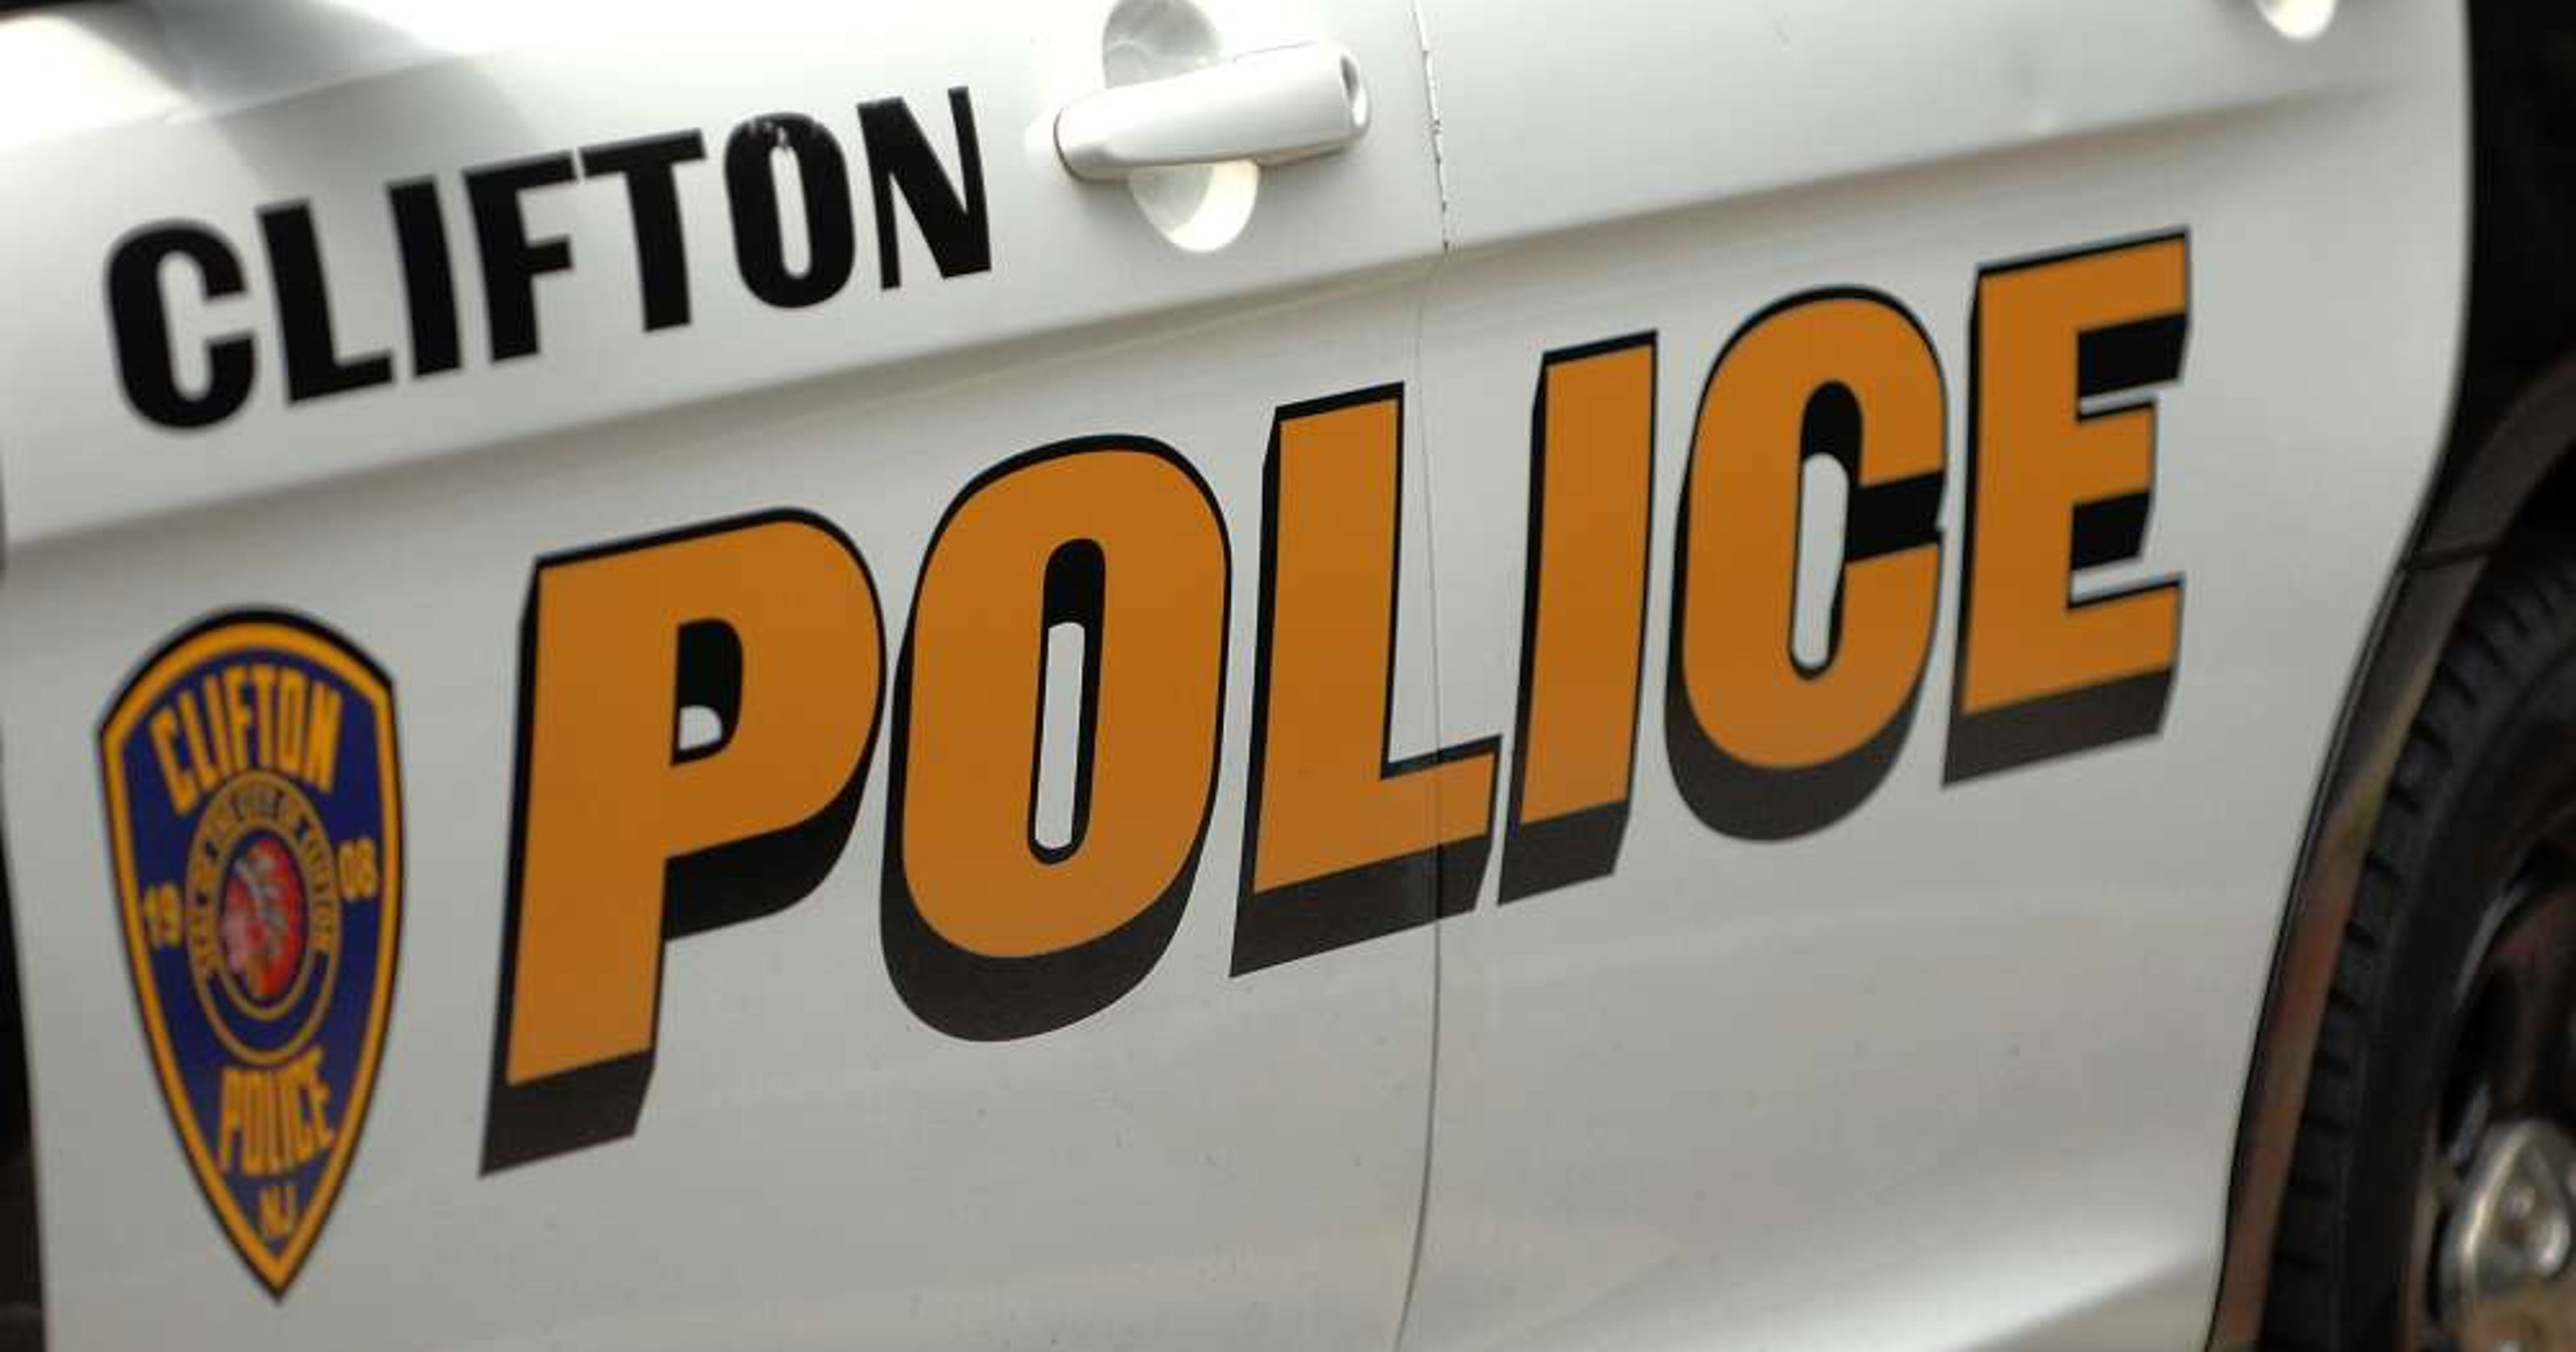 Clifton Journal Police Blotter